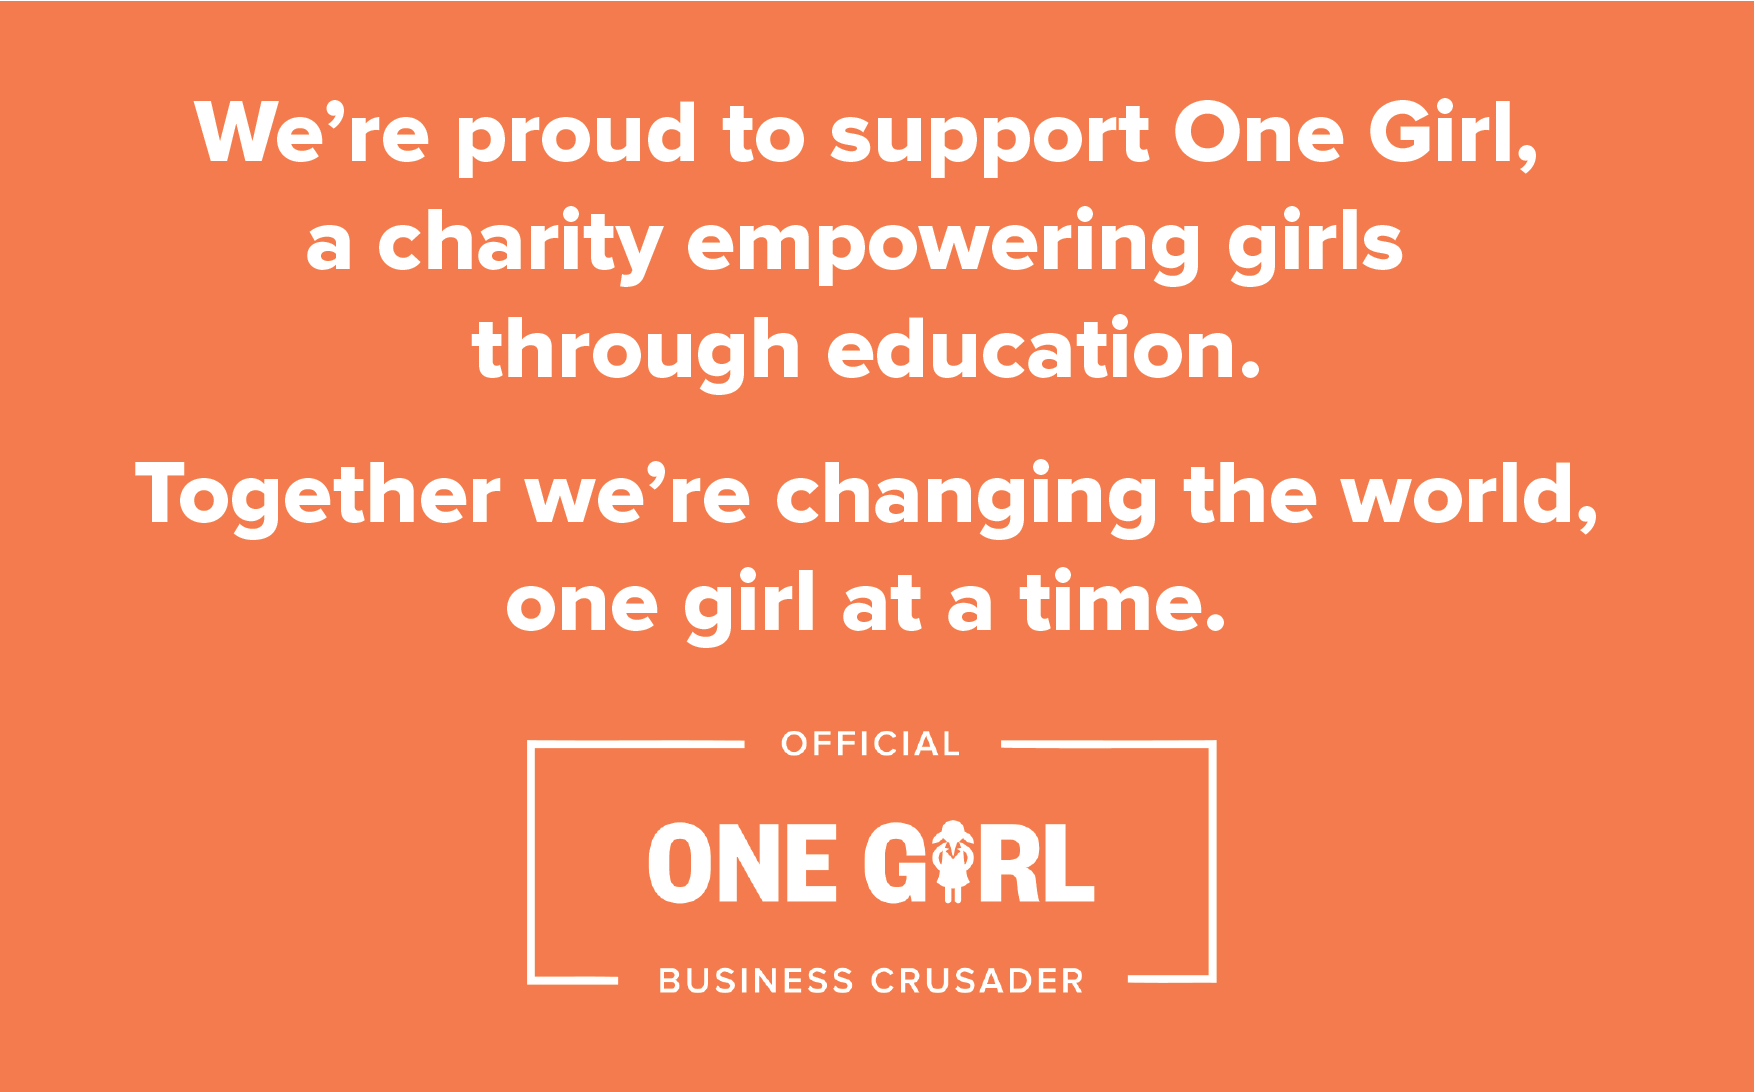 A young black schoolgirl on top, with the bottom half of the image stating: We're pround to support One Girl, a charity empowering girls through education. Together we're changing the world, one girl at a time.